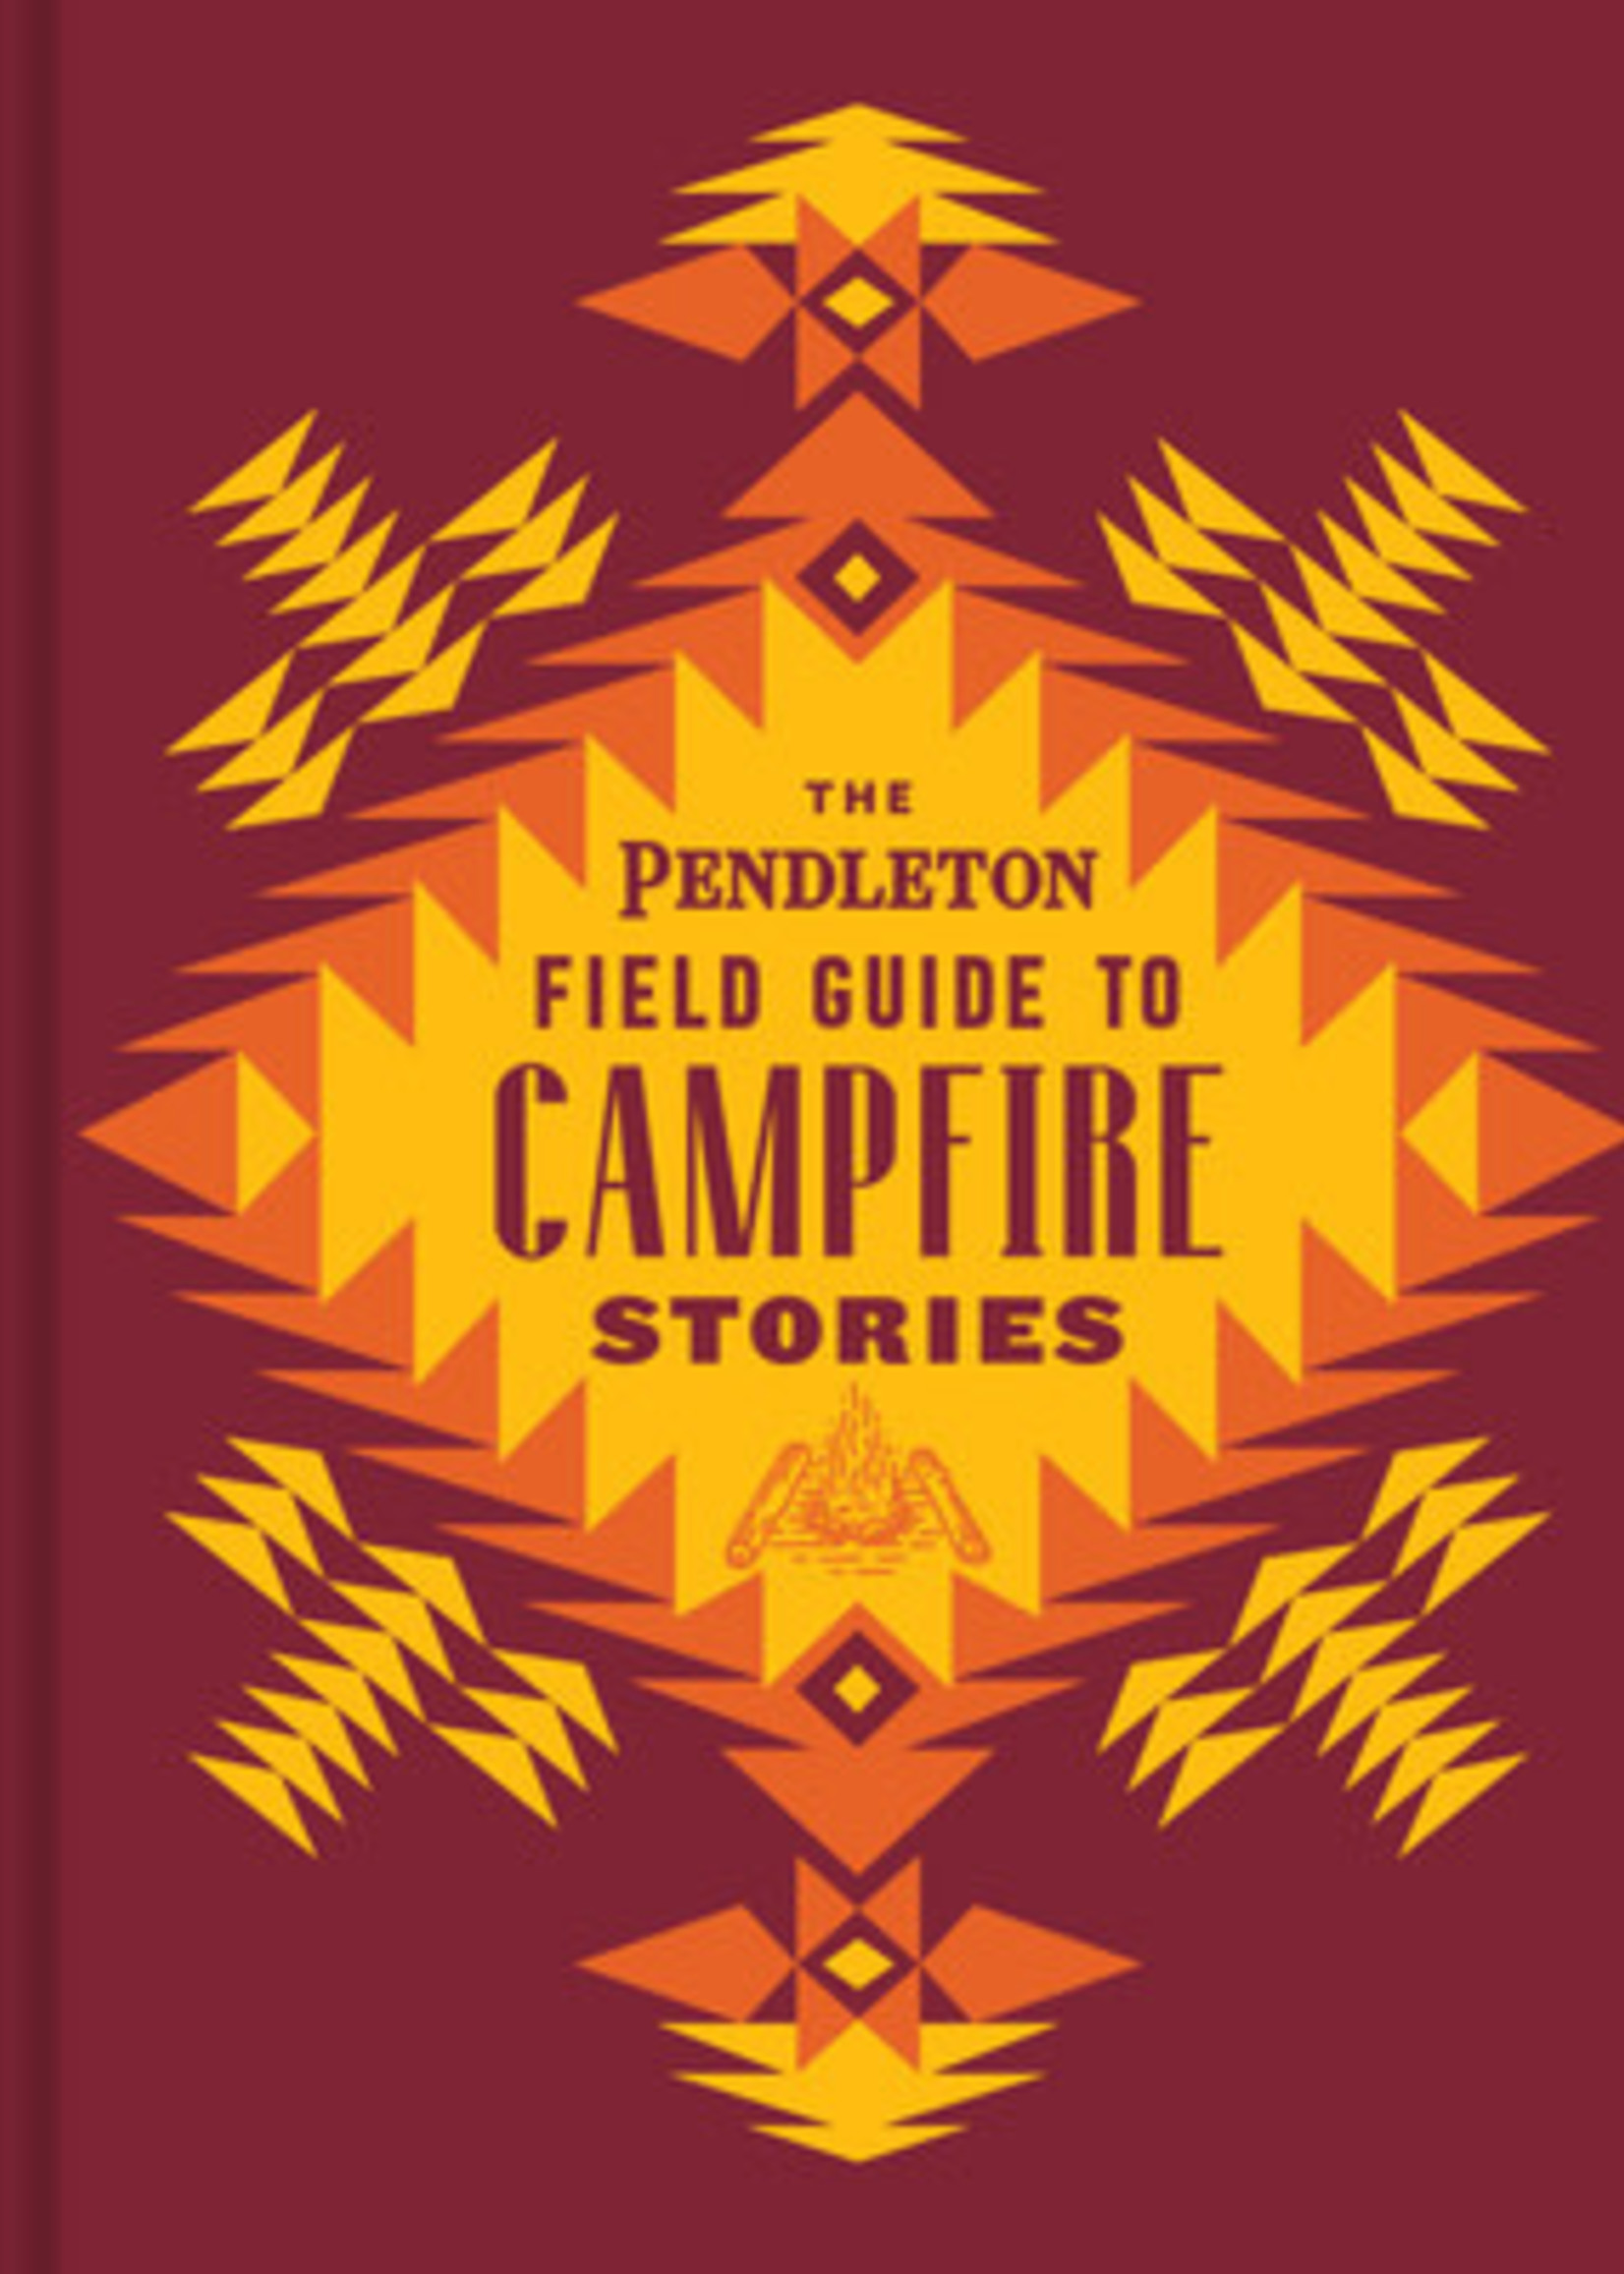 The Pendleton Field Guide to Campfire Stories by Pendleton Woolen Mills